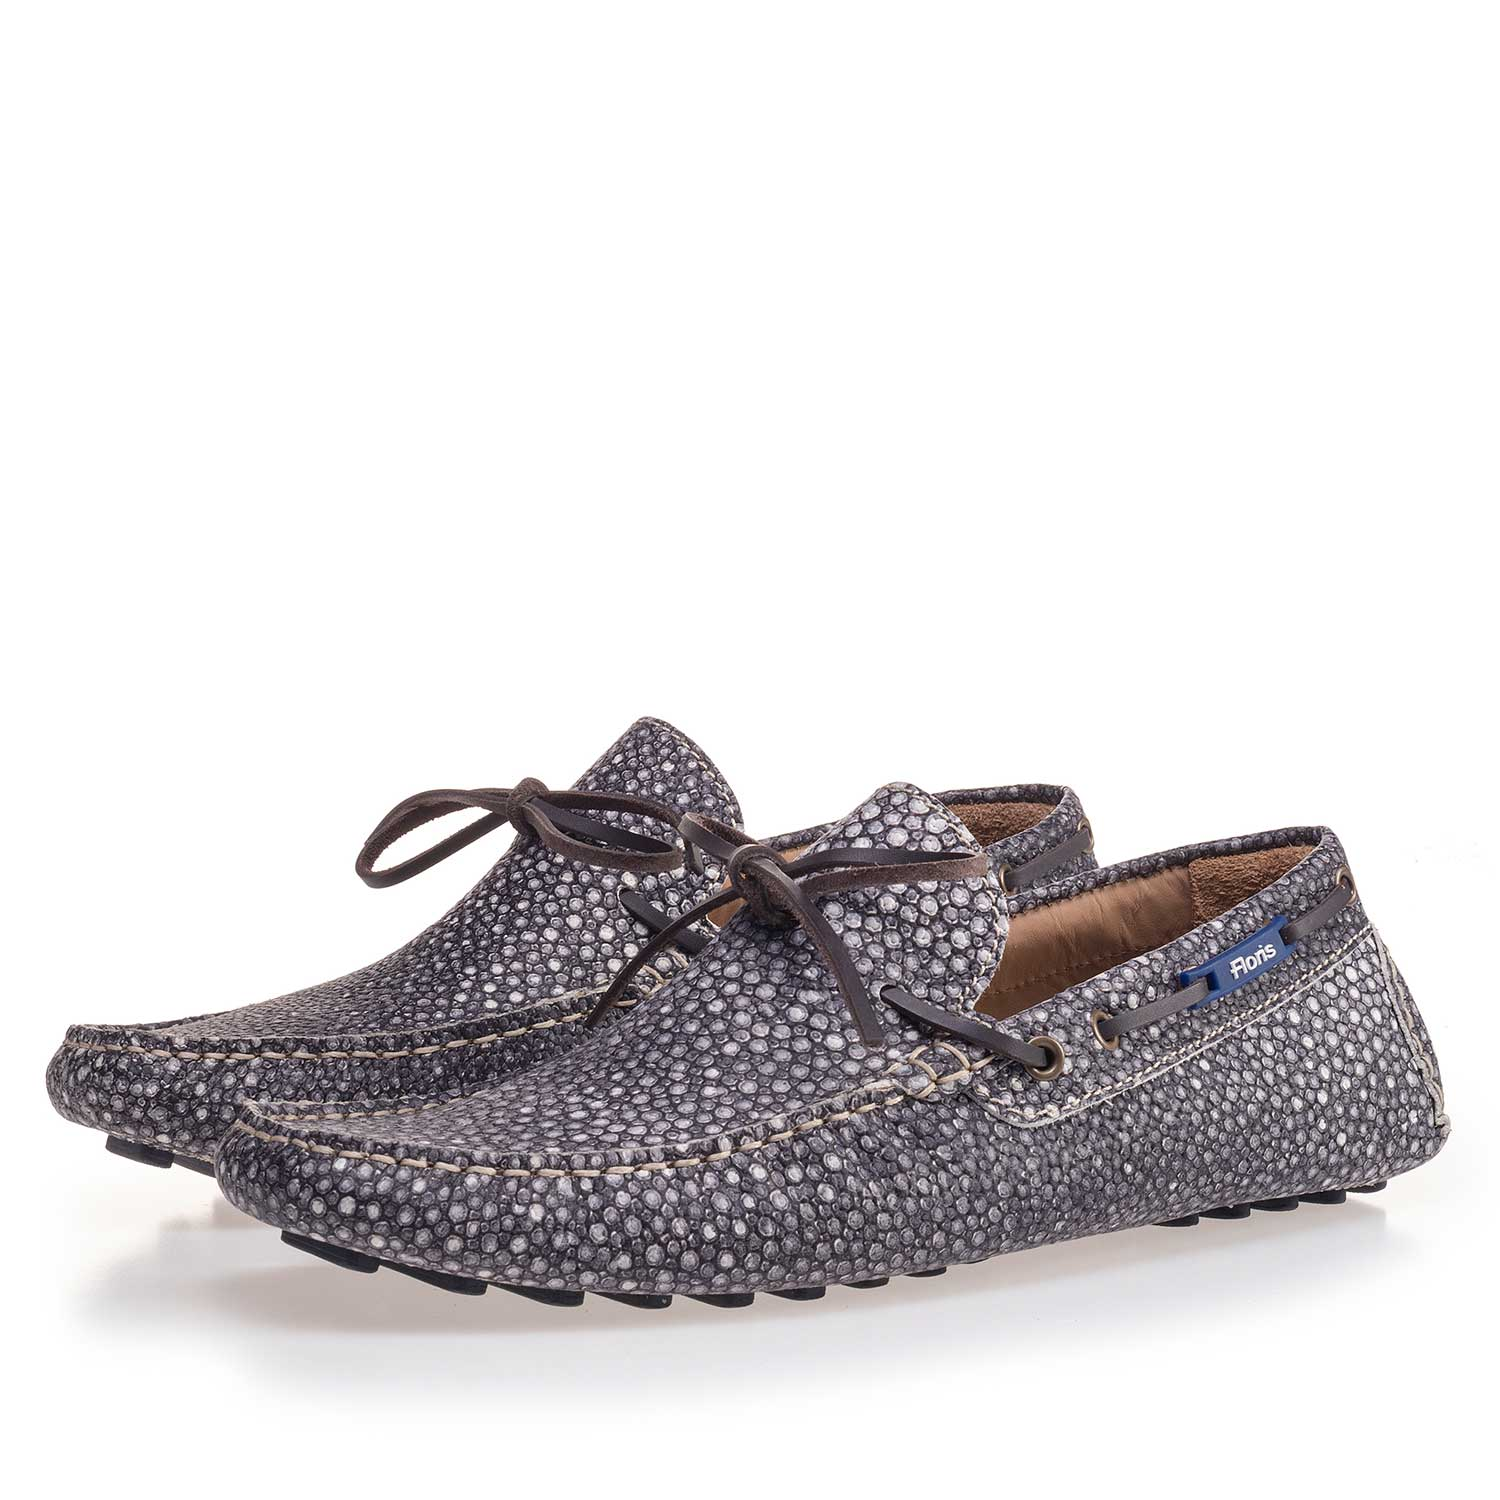 15027/13 - Grey moccasin with rye pattern